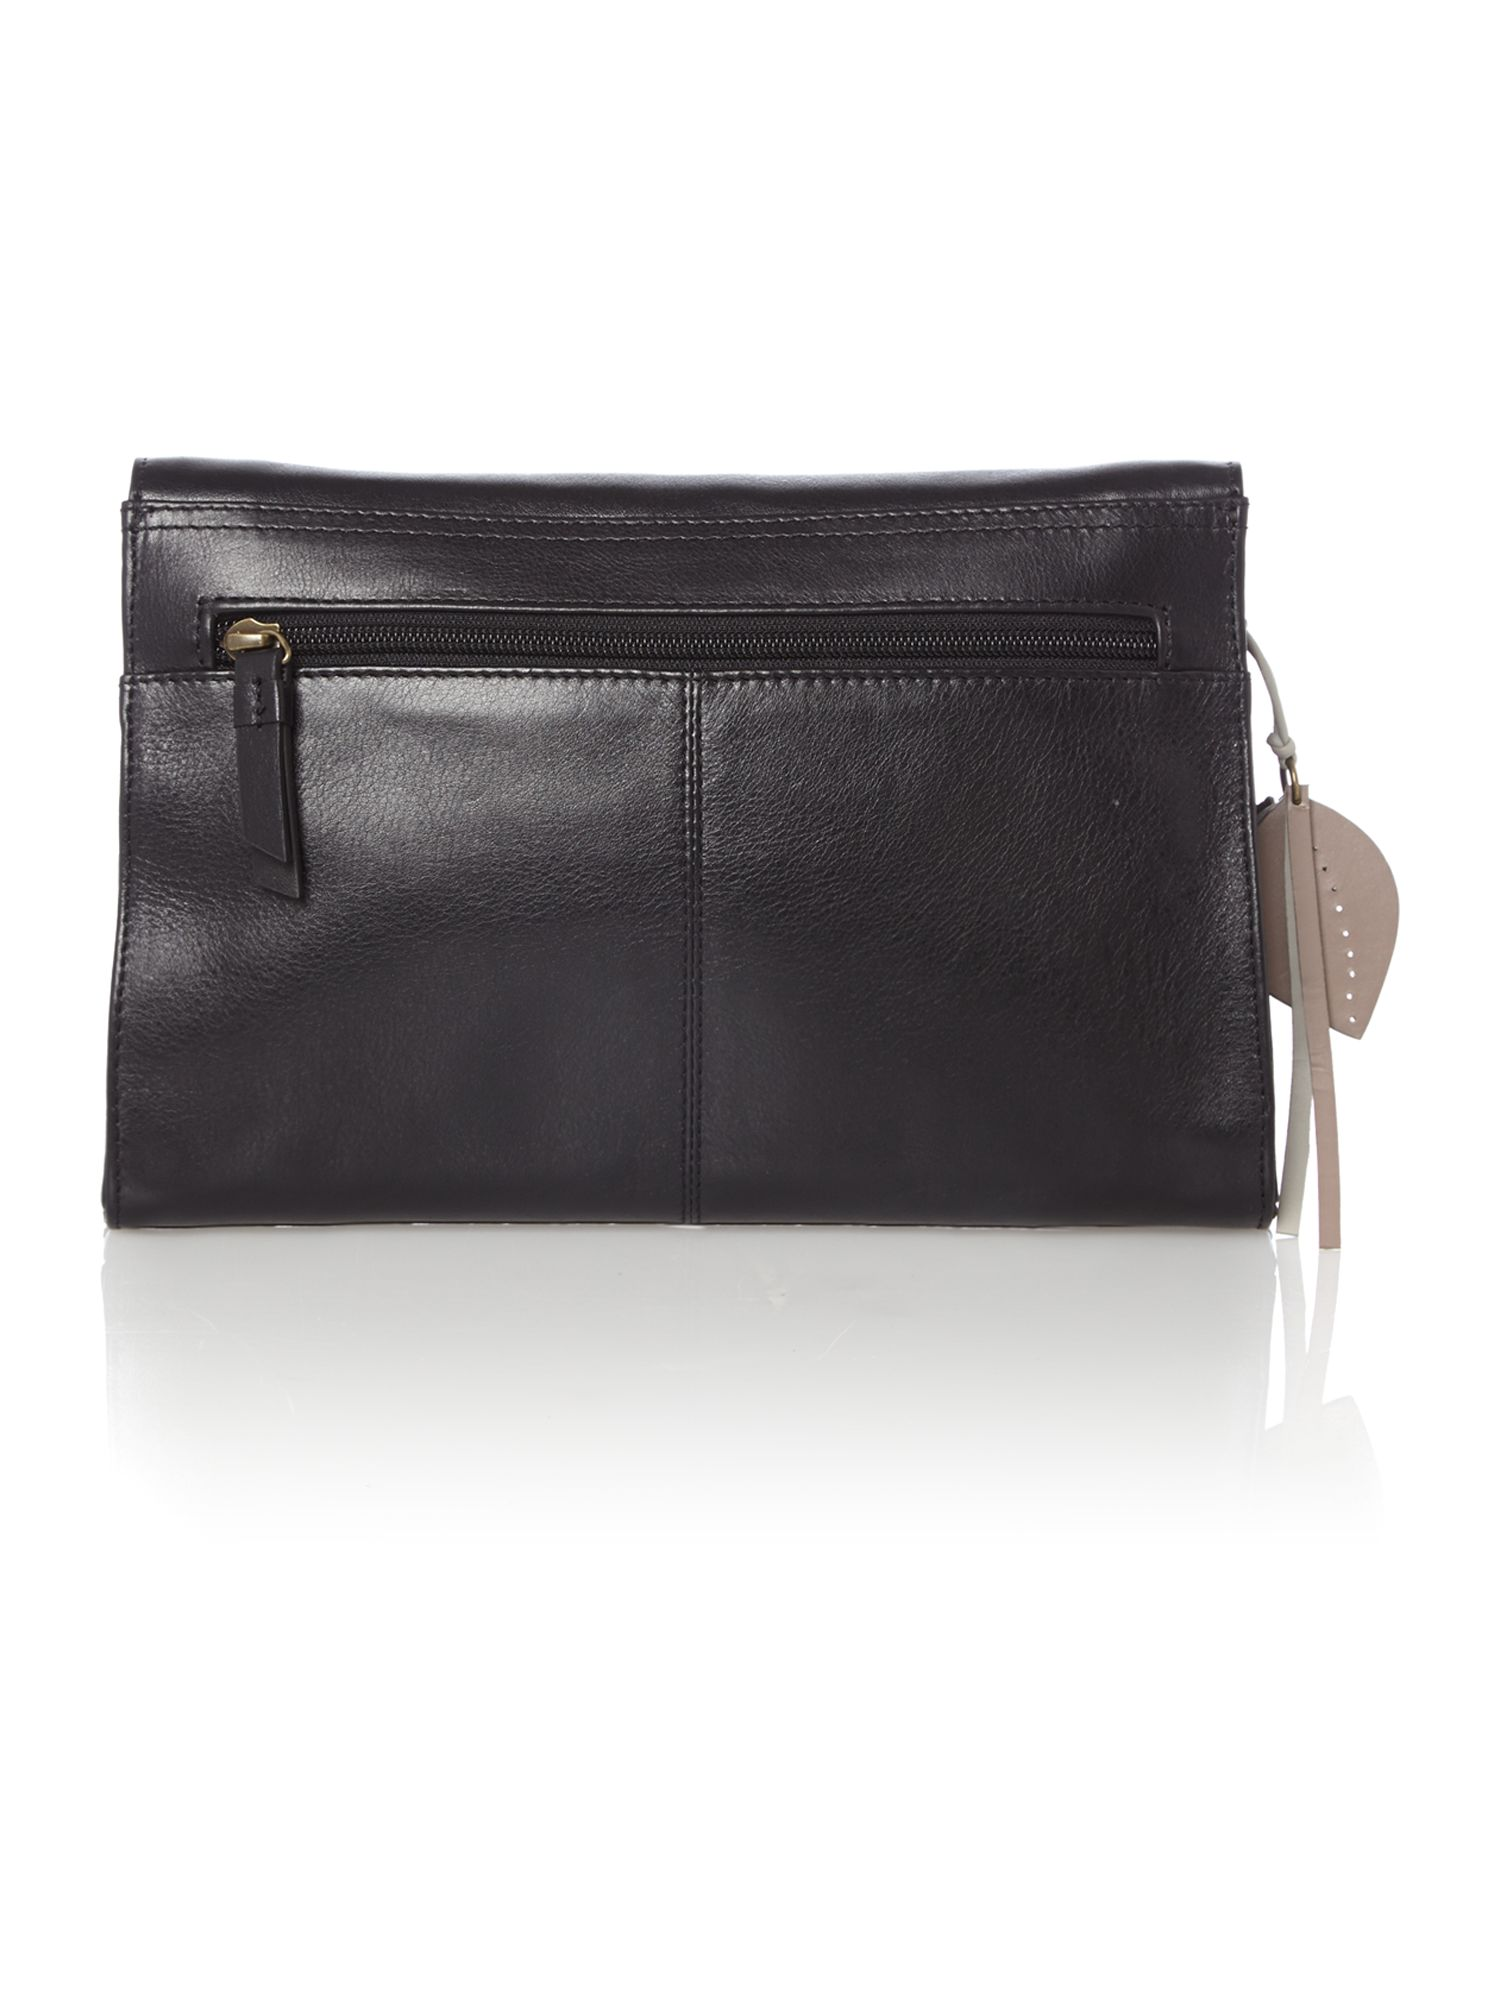 Border black leather large flapover clutch bag